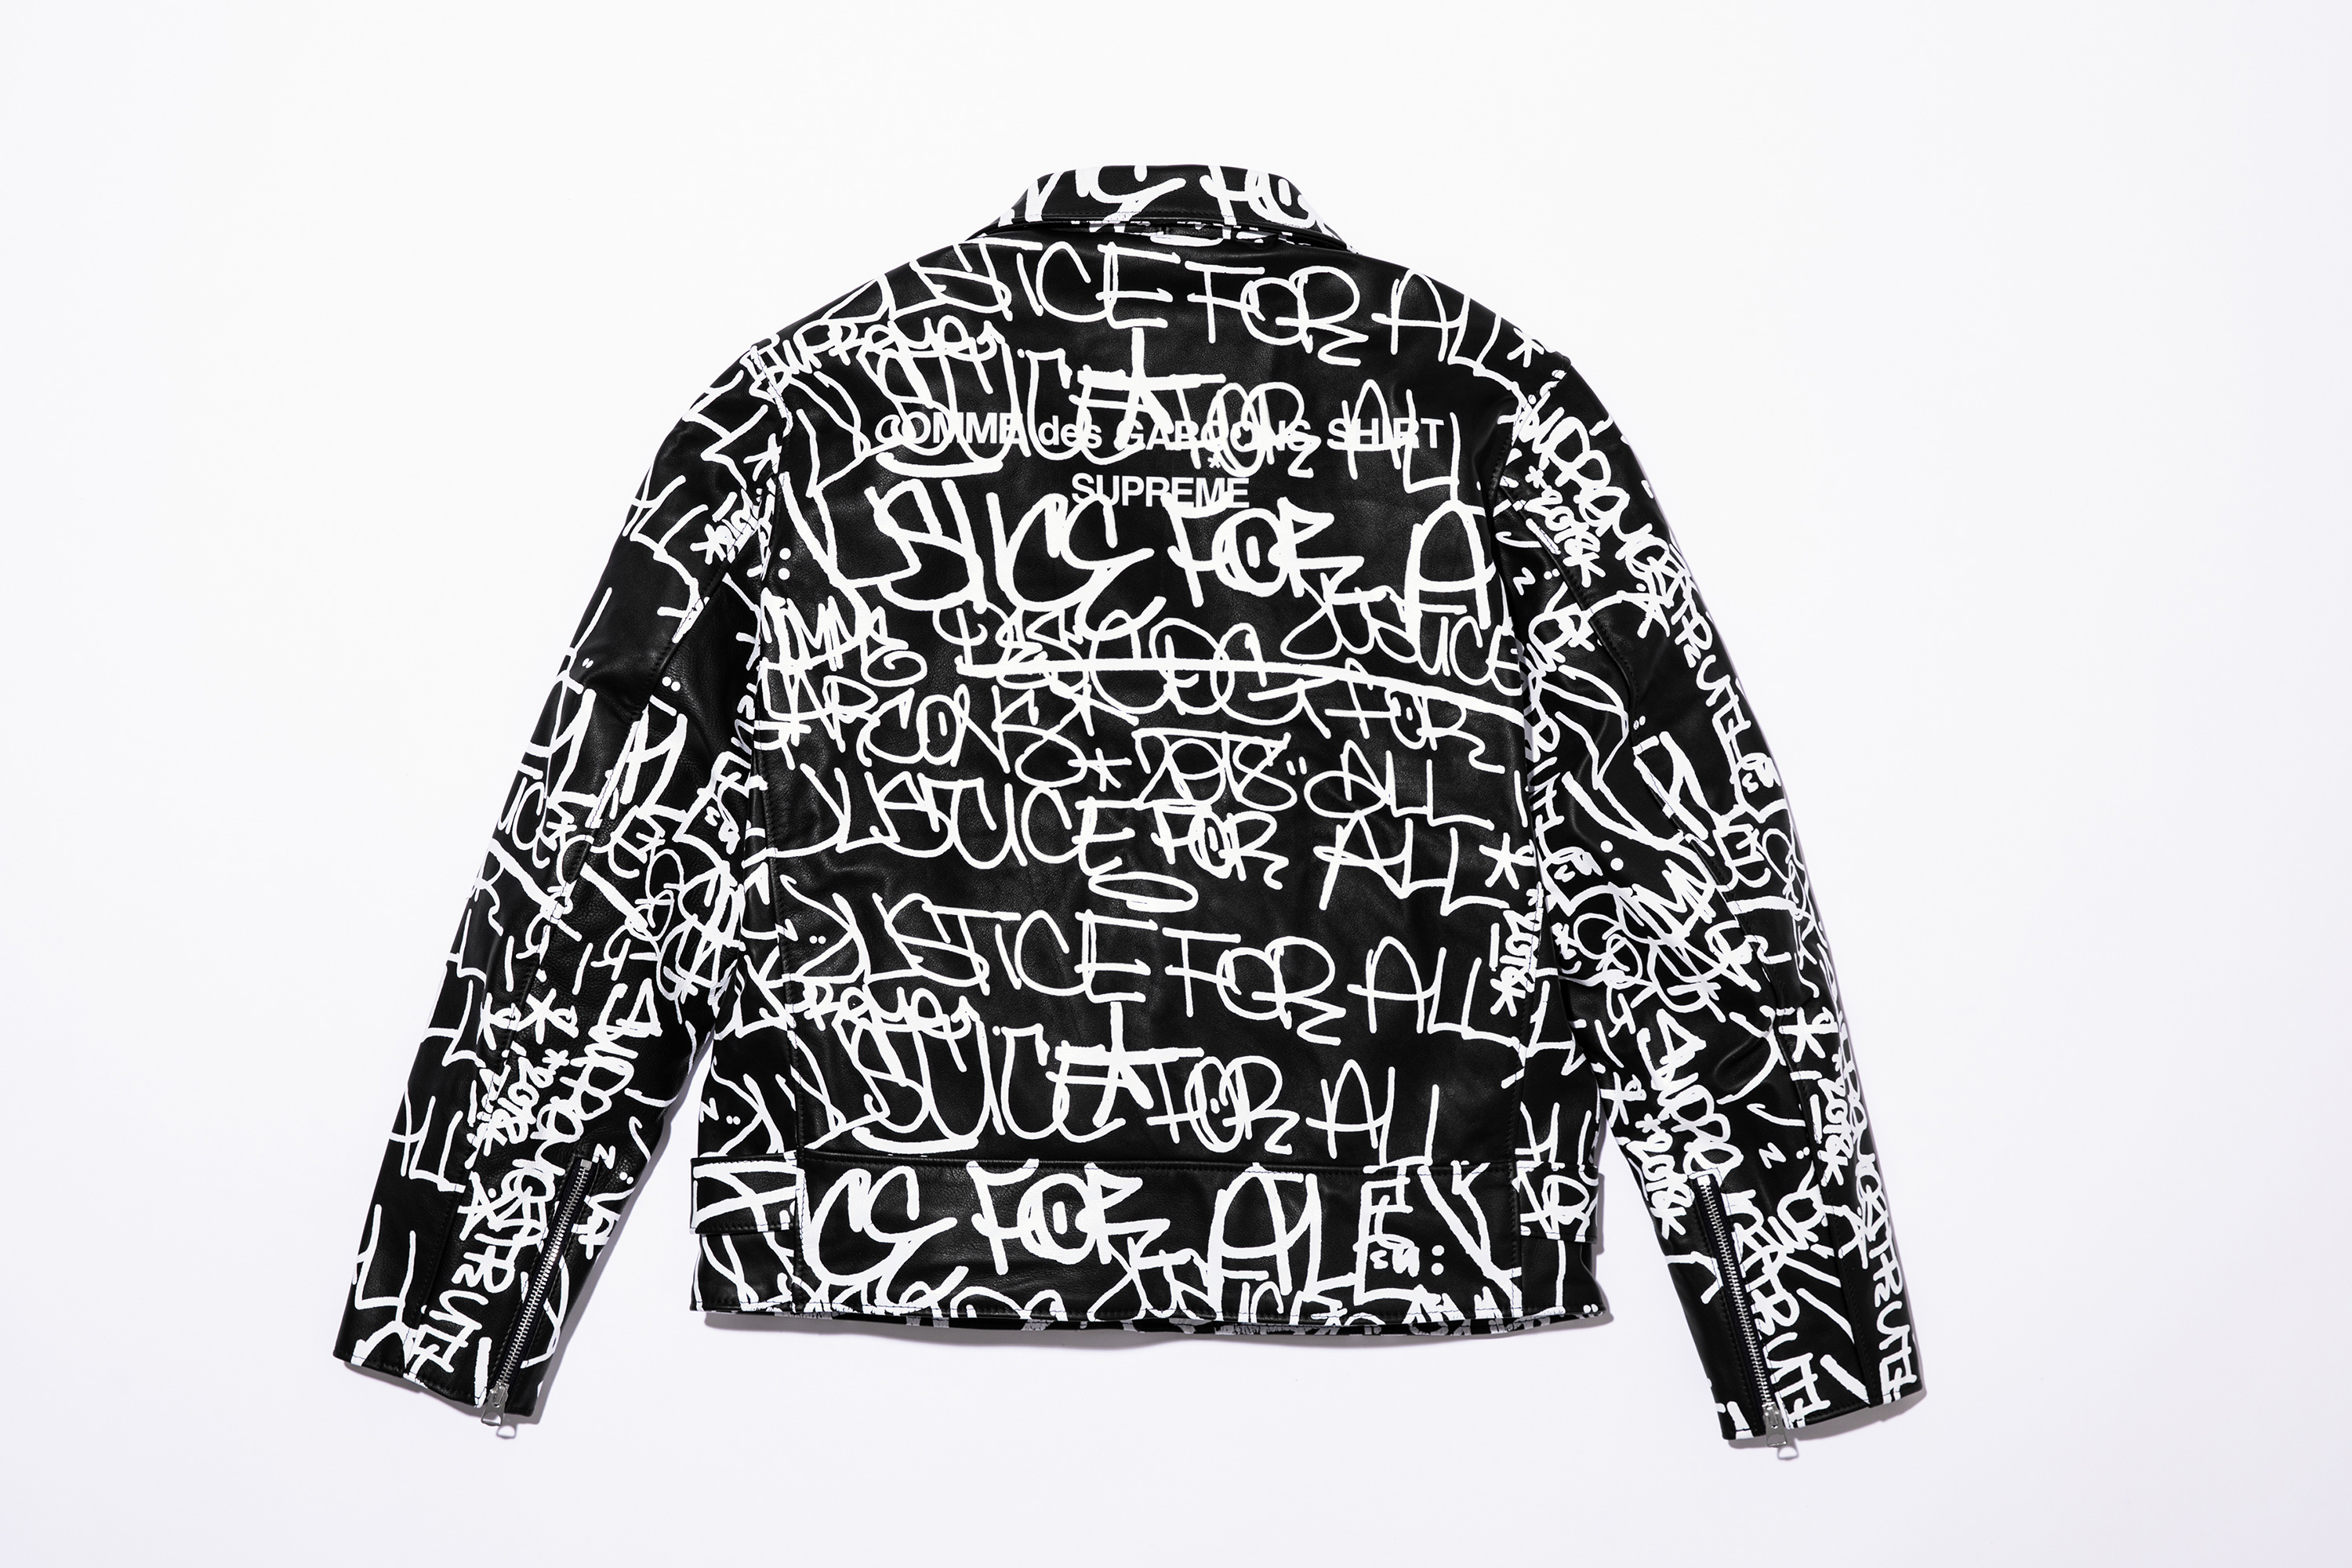 supreme-comme-des-garcons-shirt-schott-painted-perfecto-leather-jacket-2018aw-collaboration-release-20180915-week4